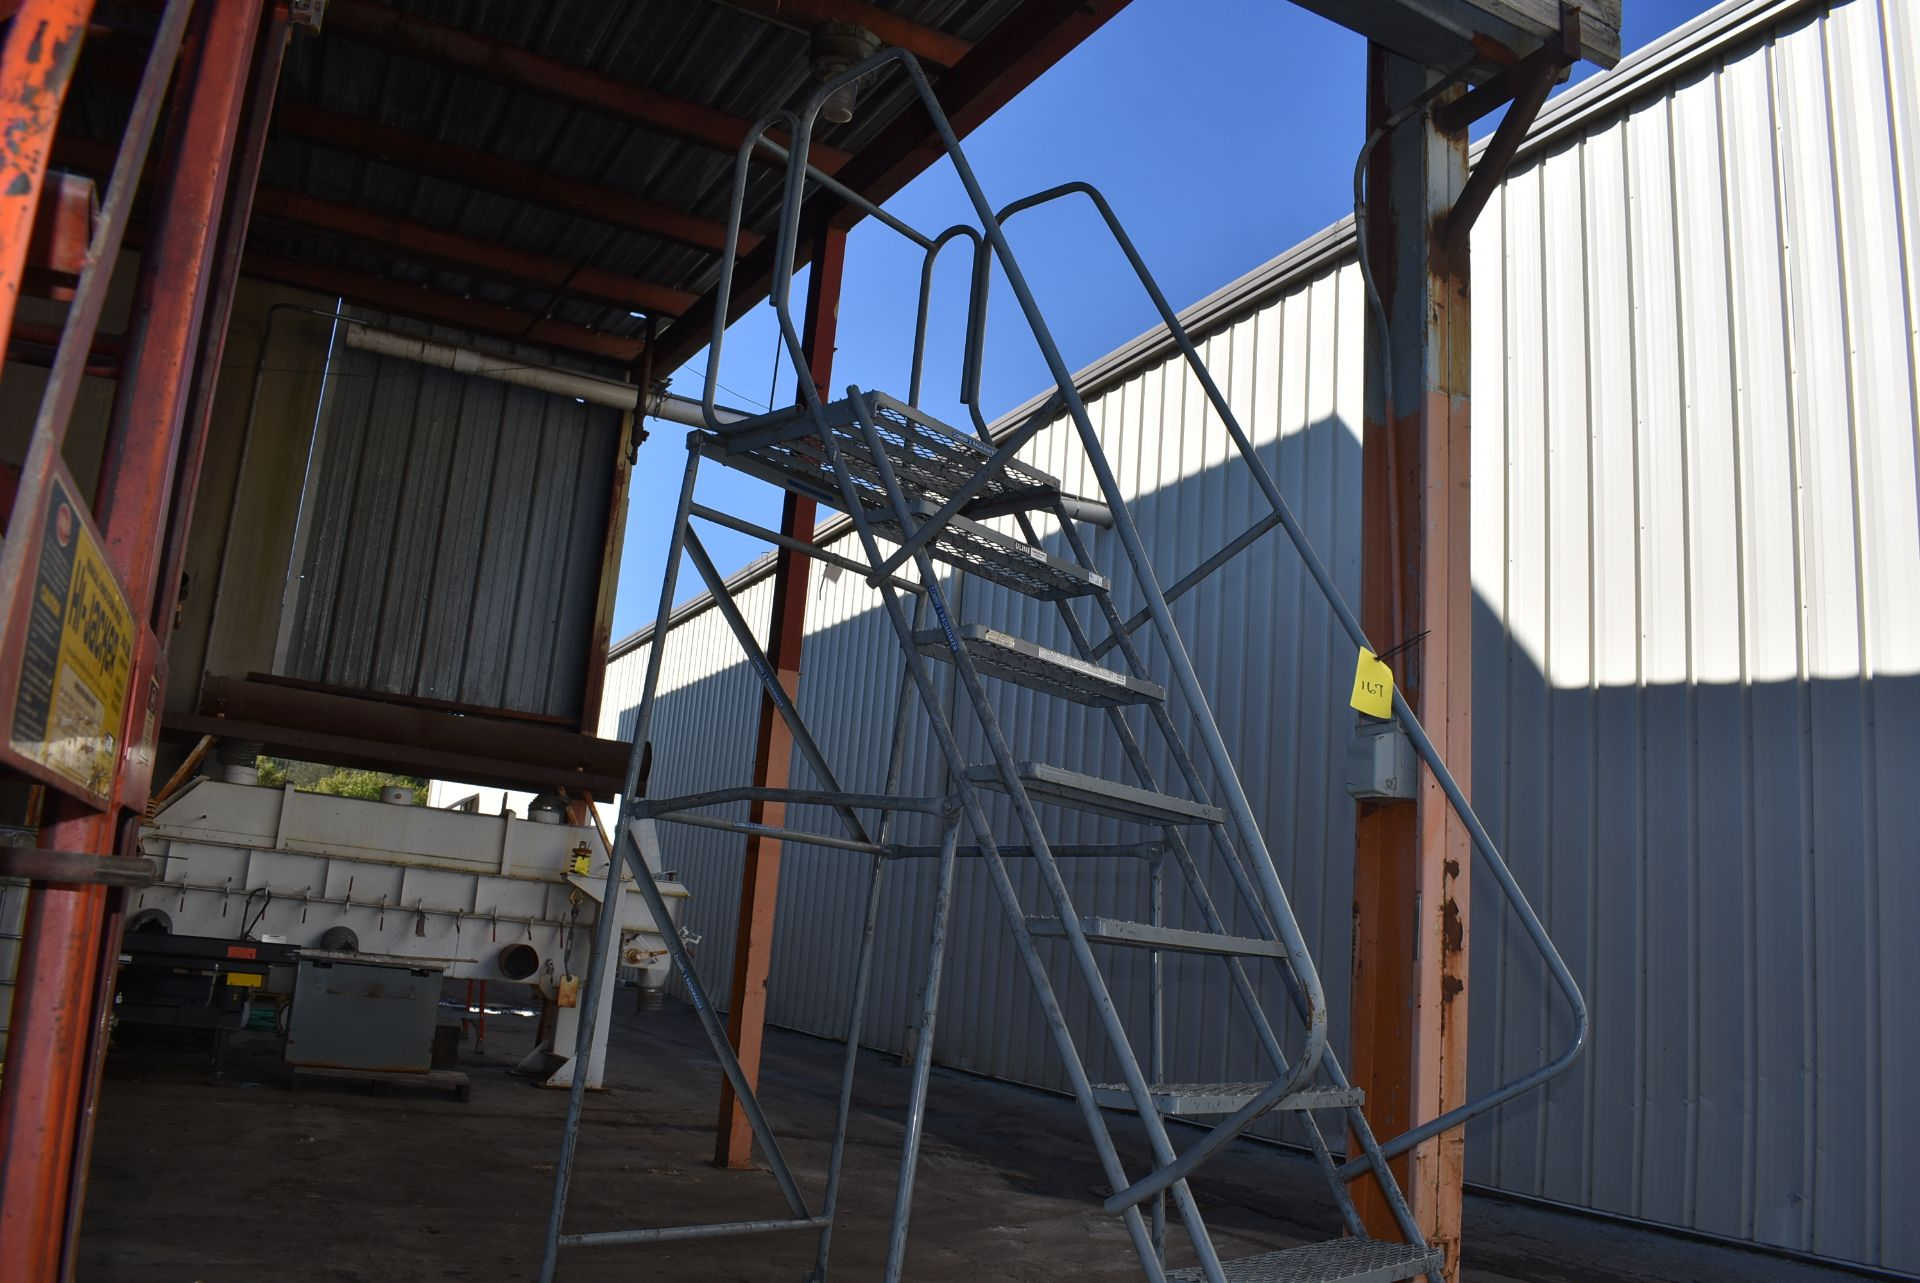 Uline 6' Portable Stairs - Image 3 of 3